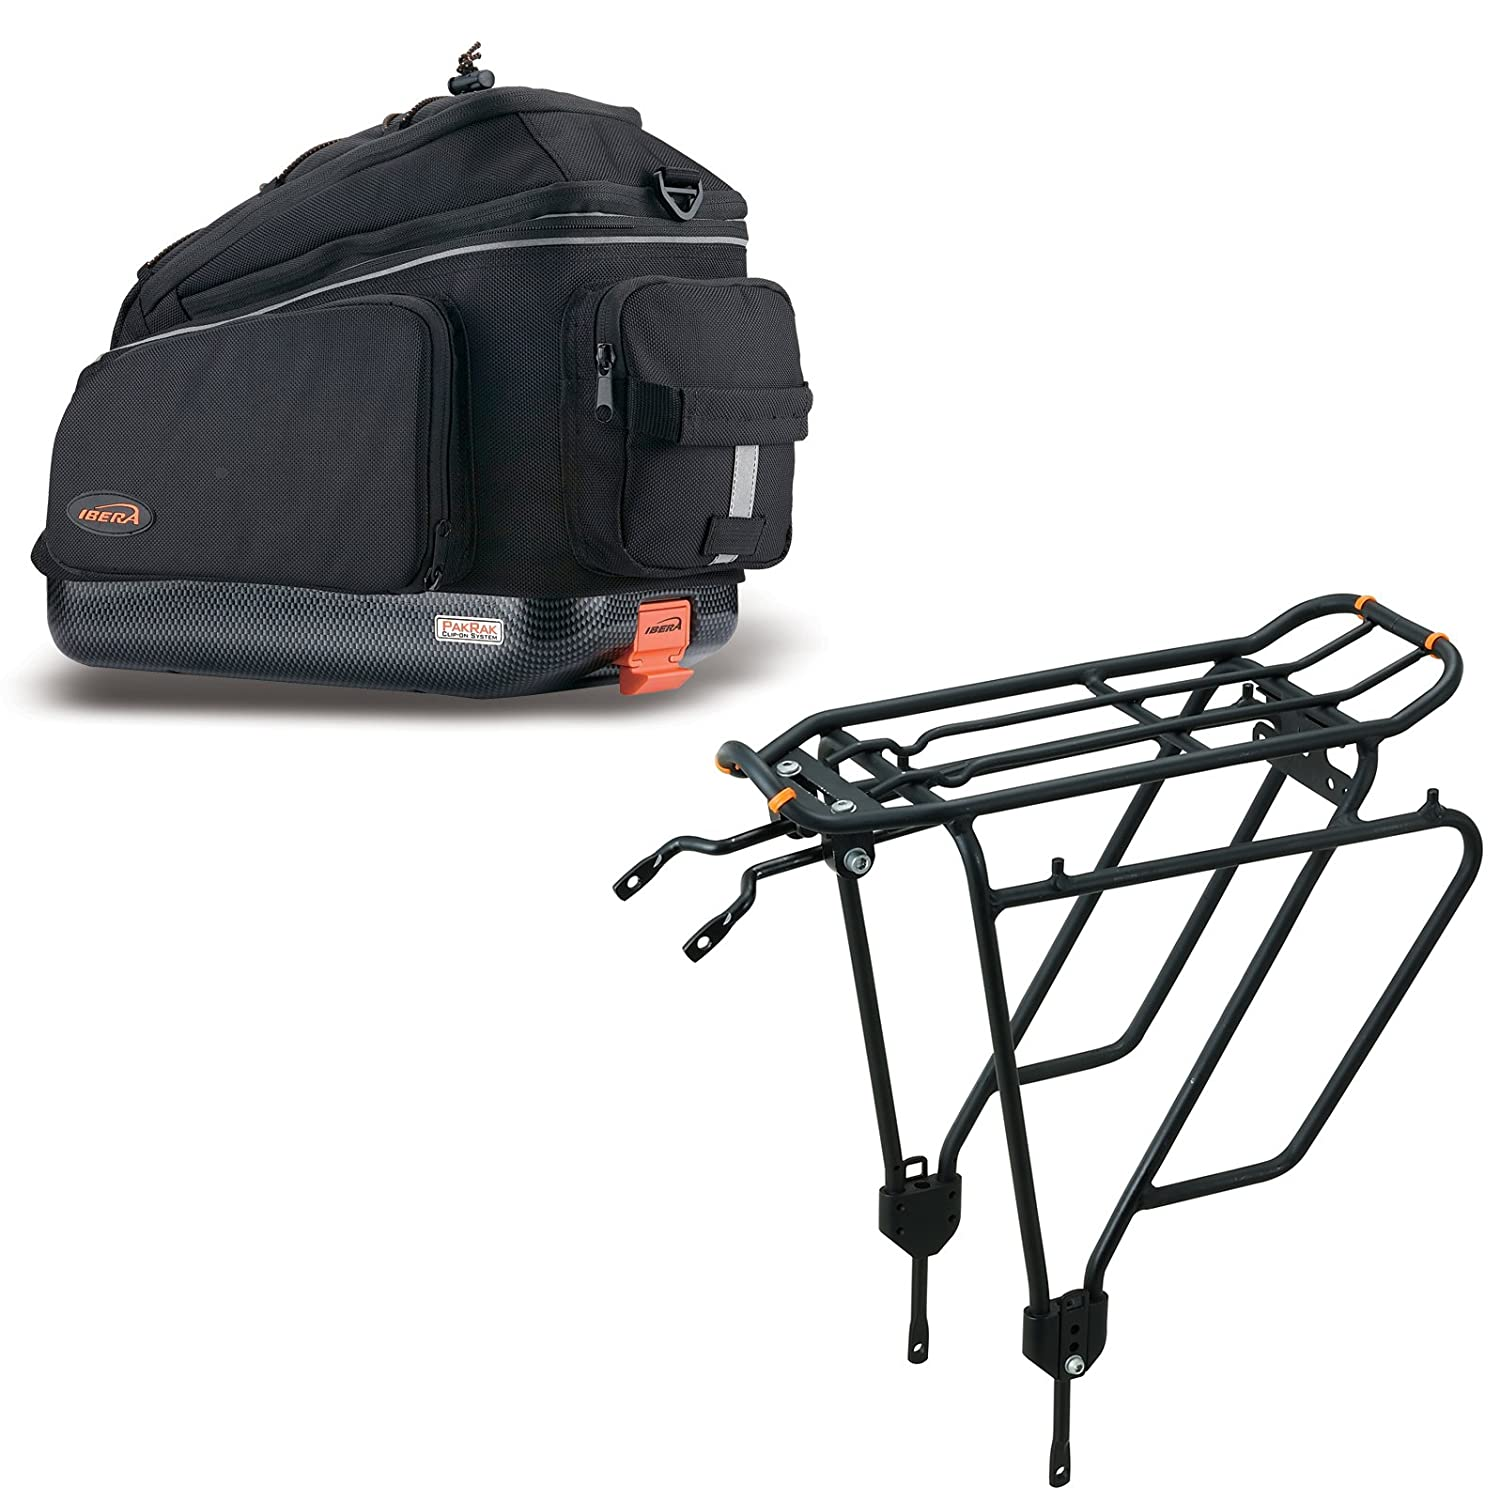 Ibera Parka IB-RA4 Touring Bicycle Carrier and Quick Release Bag